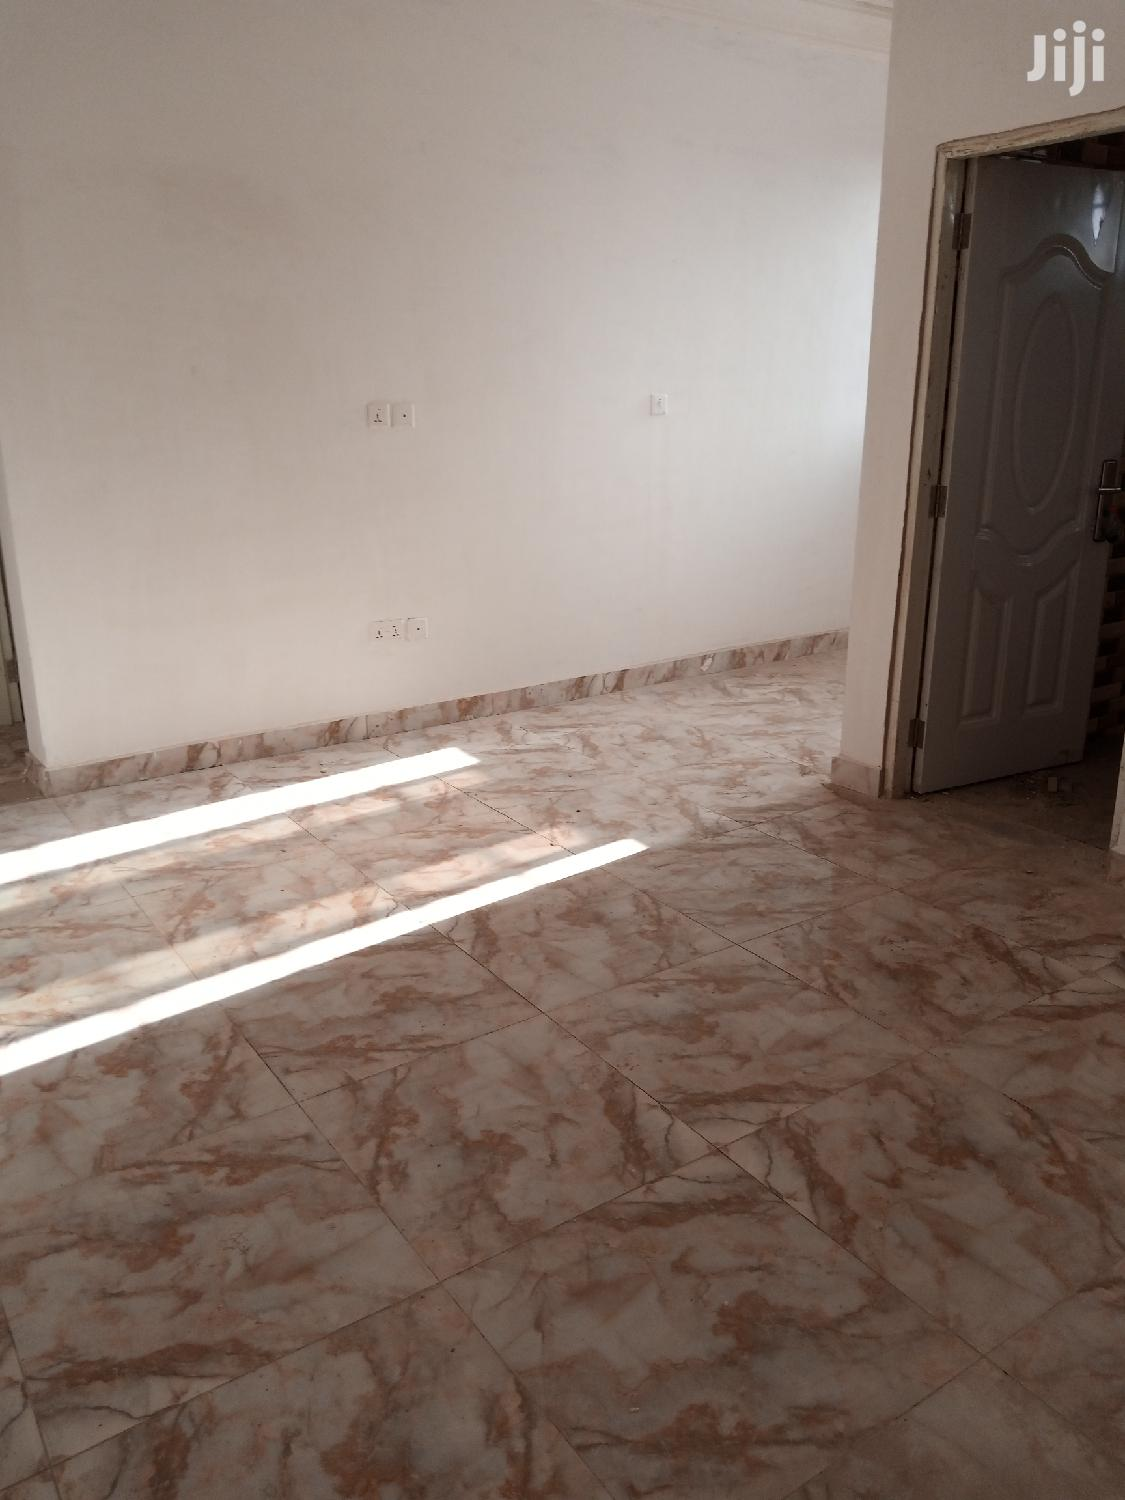 2 Bedrooms Flat For Sale At Lashibi Com17 | Houses & Apartments For Sale for sale in Tema Metropolitan, Greater Accra, Ghana